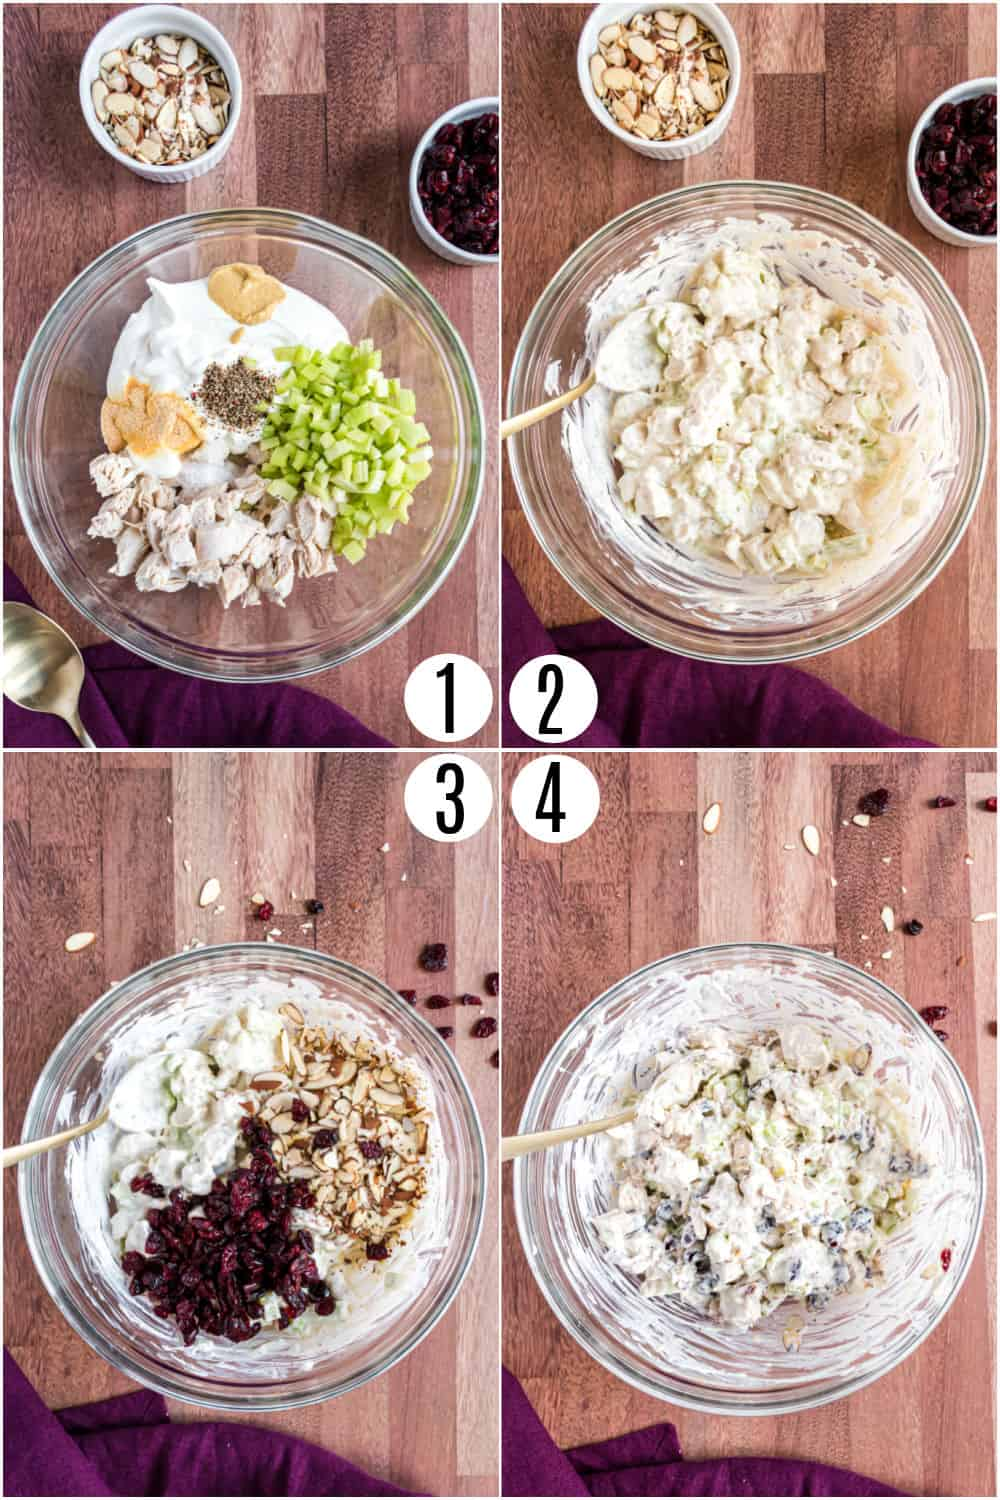 Step by step photos showing how to make chicken salad.